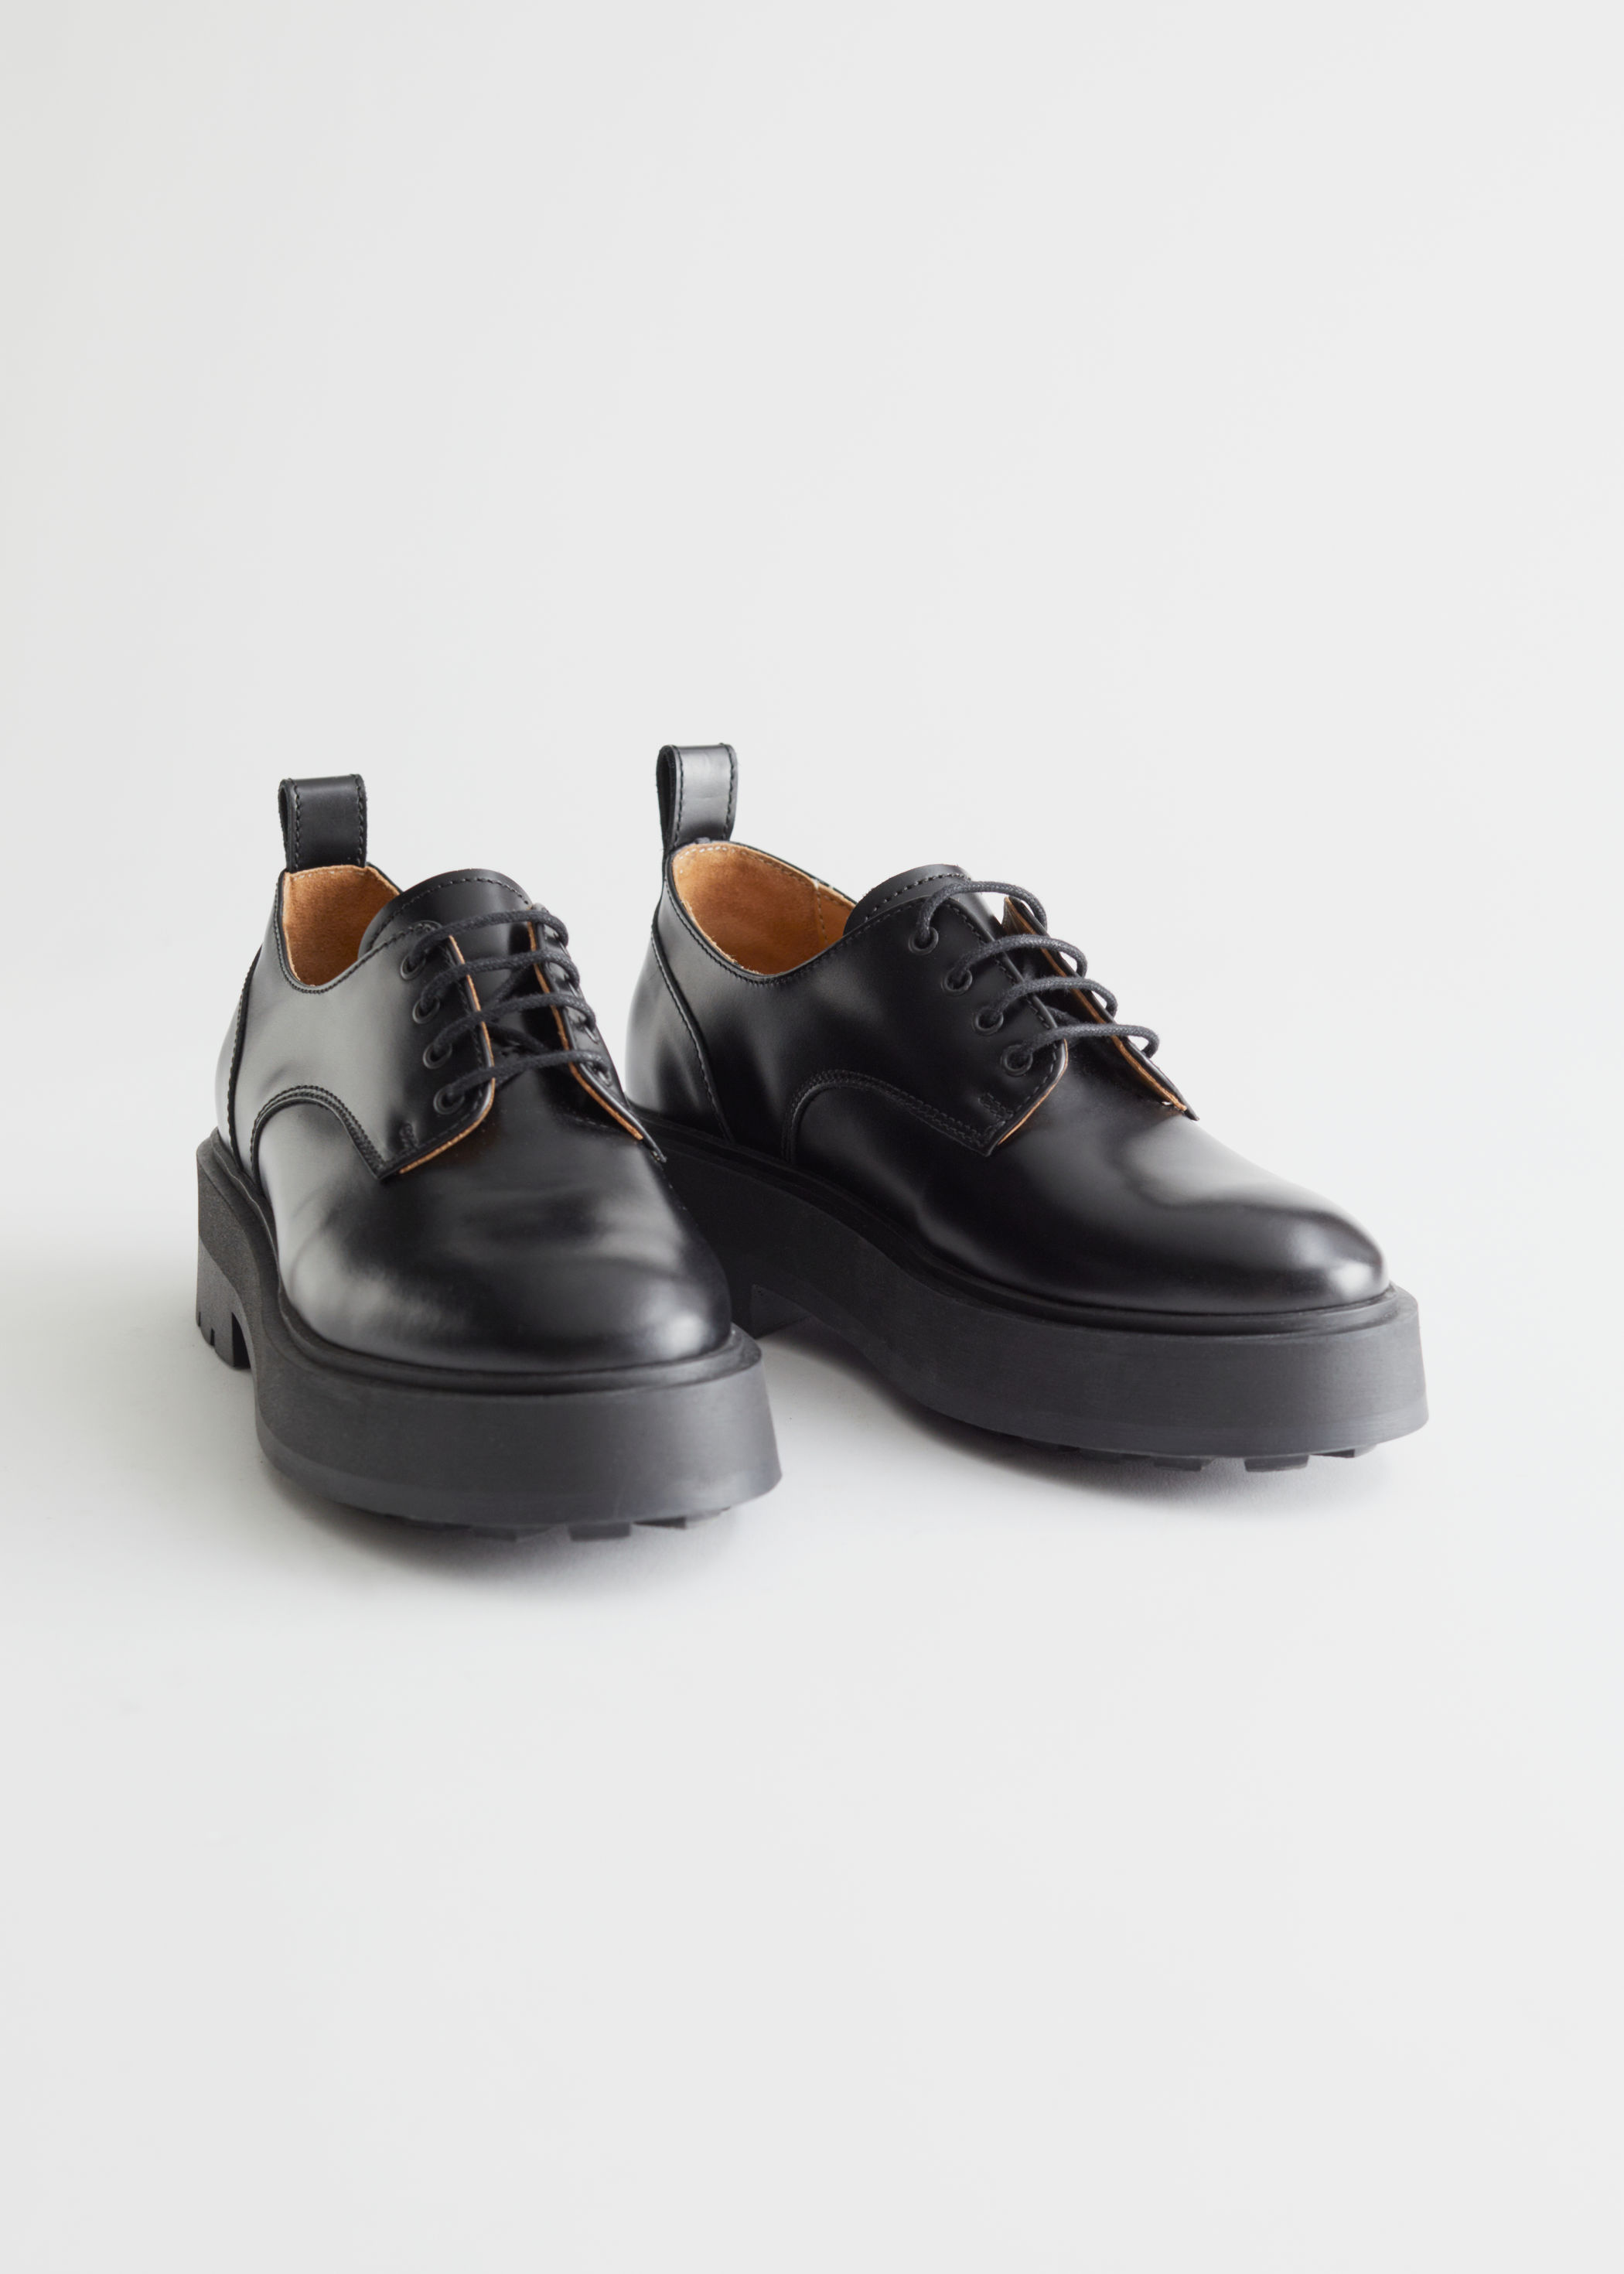 Chunky Leather Oxfords, £120, & Other Stories